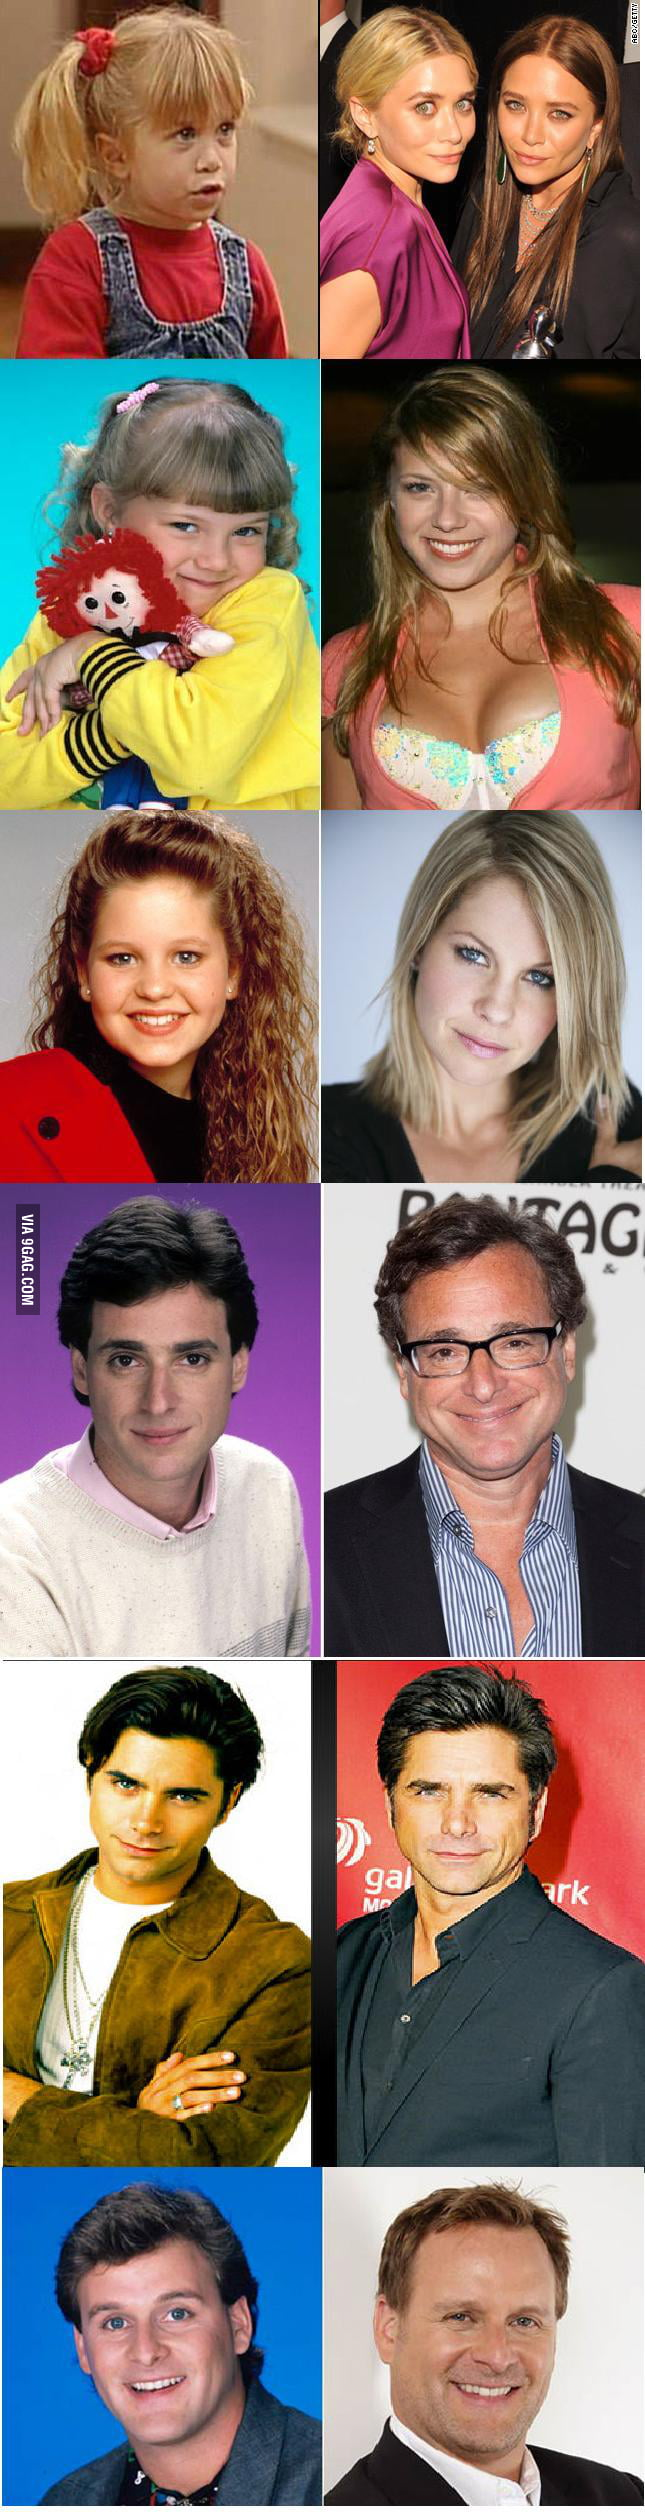 Full house - then and now - 9GAG Cast Of Full House Then And Now Pictures